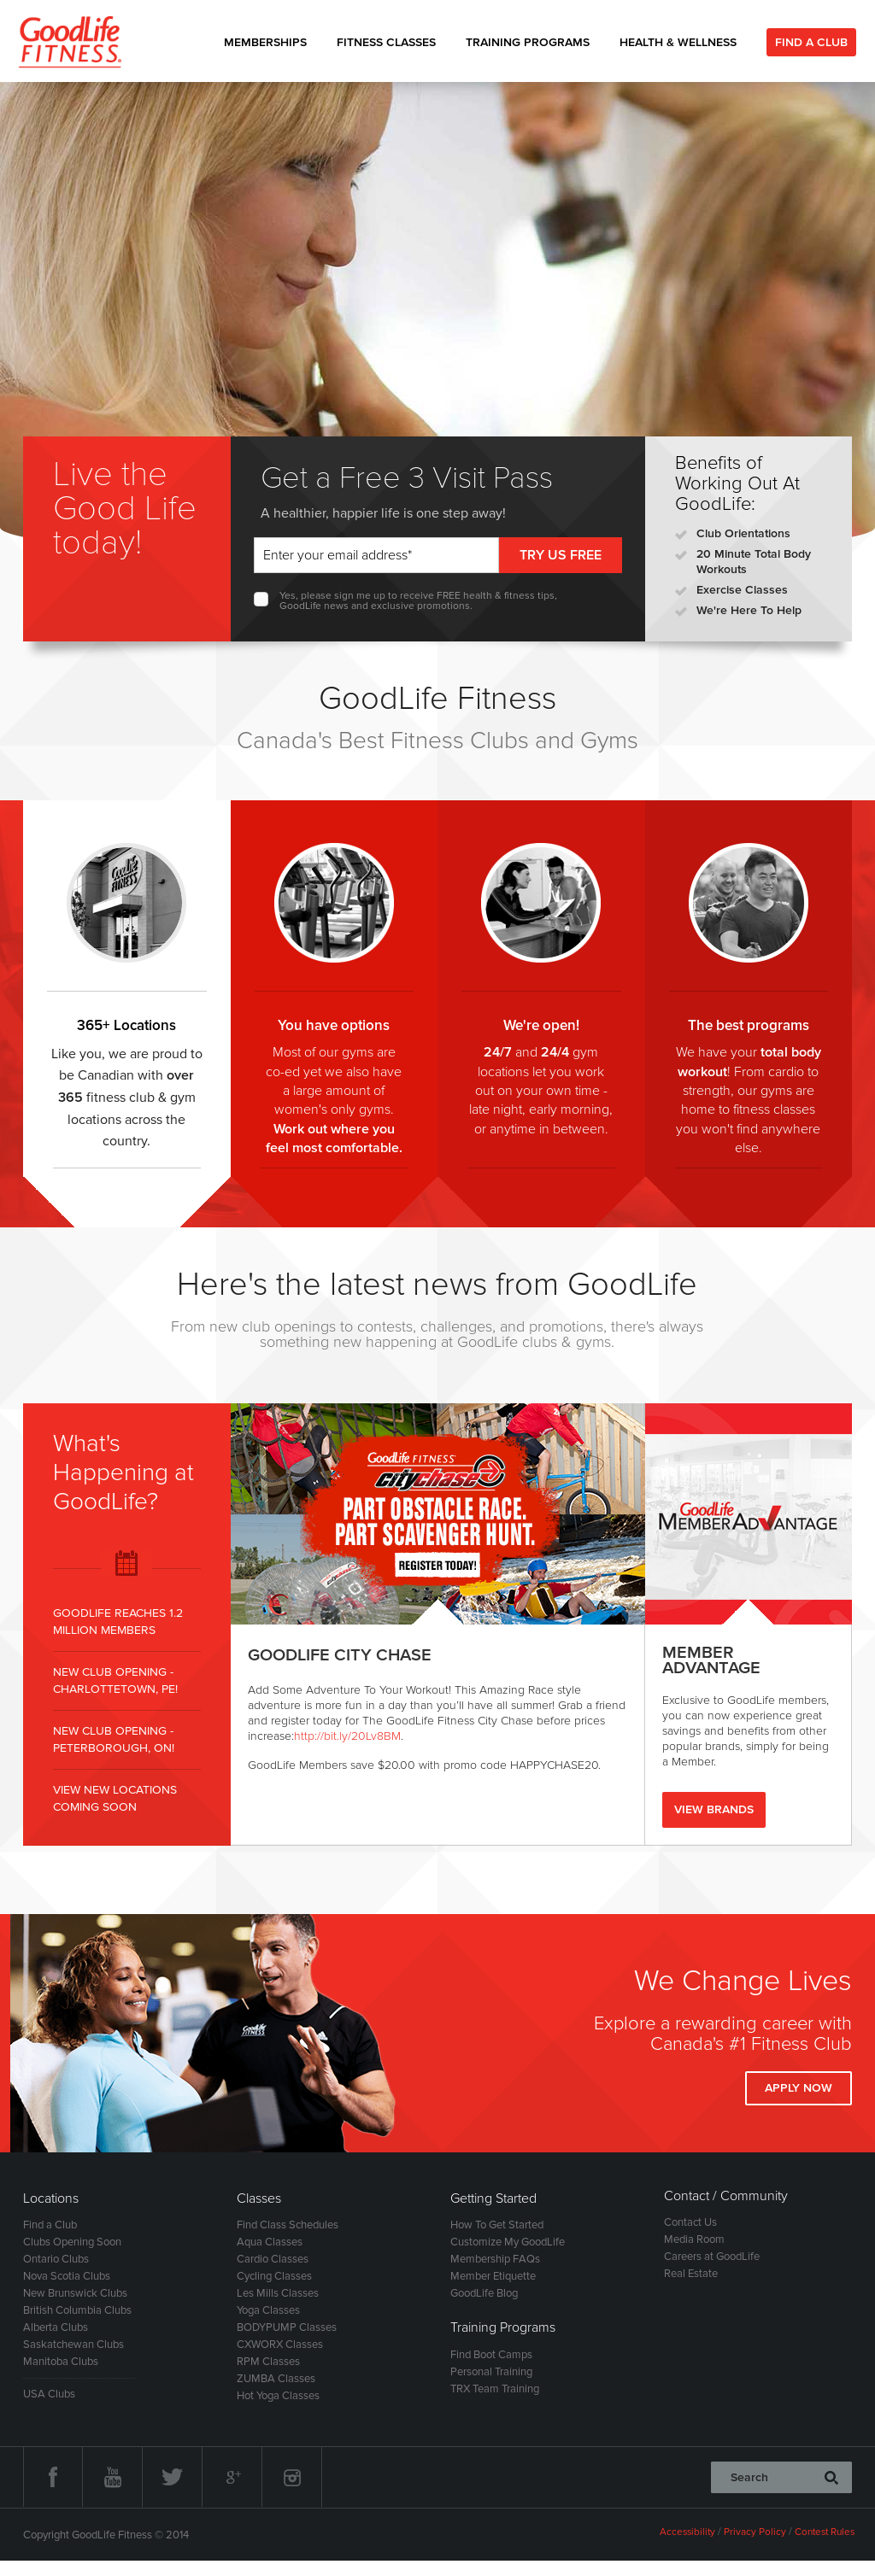 Owler Reports Goodlife Fitness Goodlife Fitness Picks Fcb